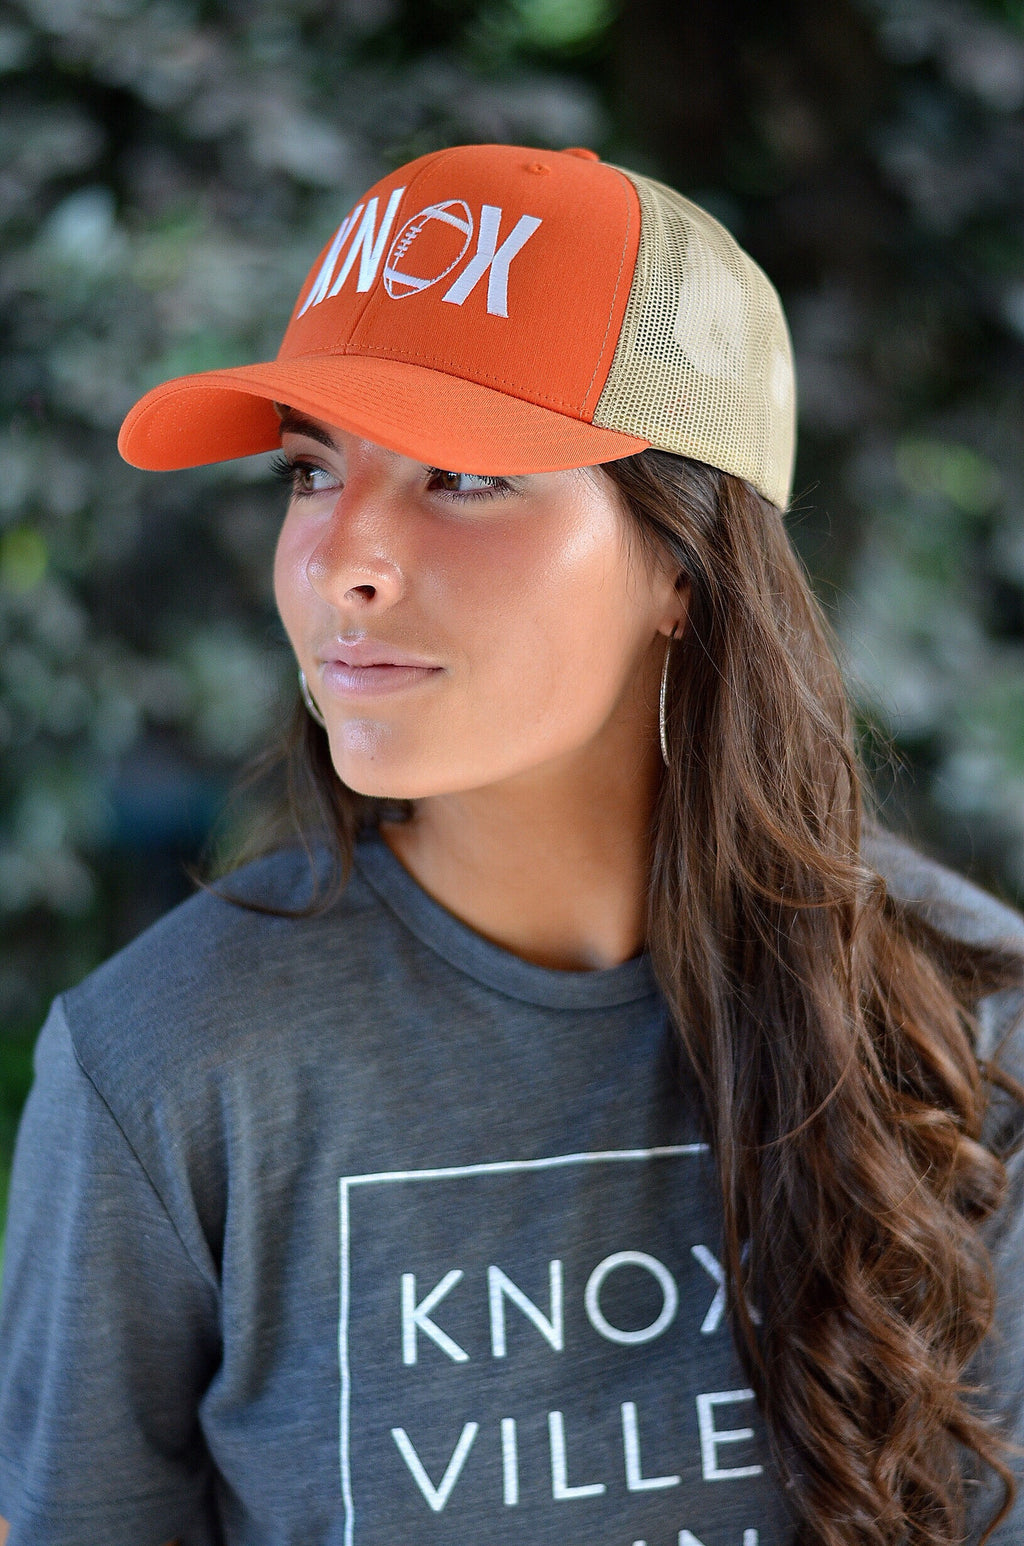 KNOX Football Trucker Hat, Orange